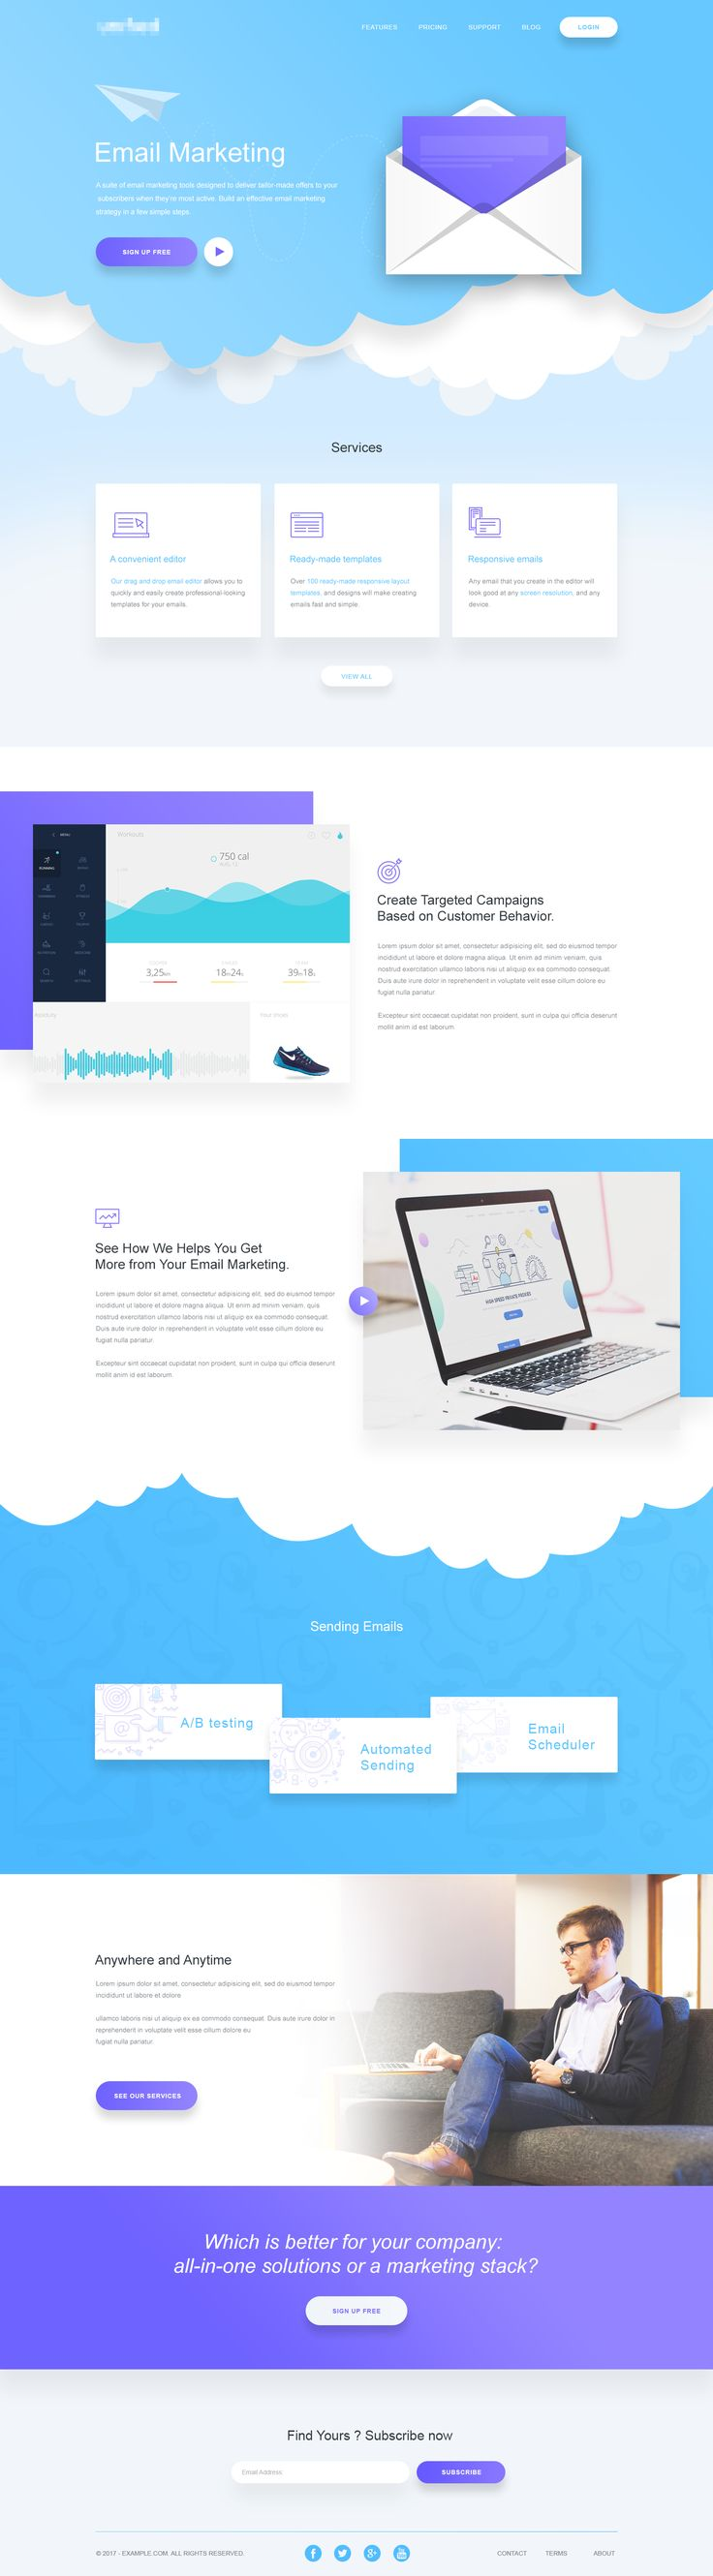 Dribbble - email_marketing_landing_page.png by Rono